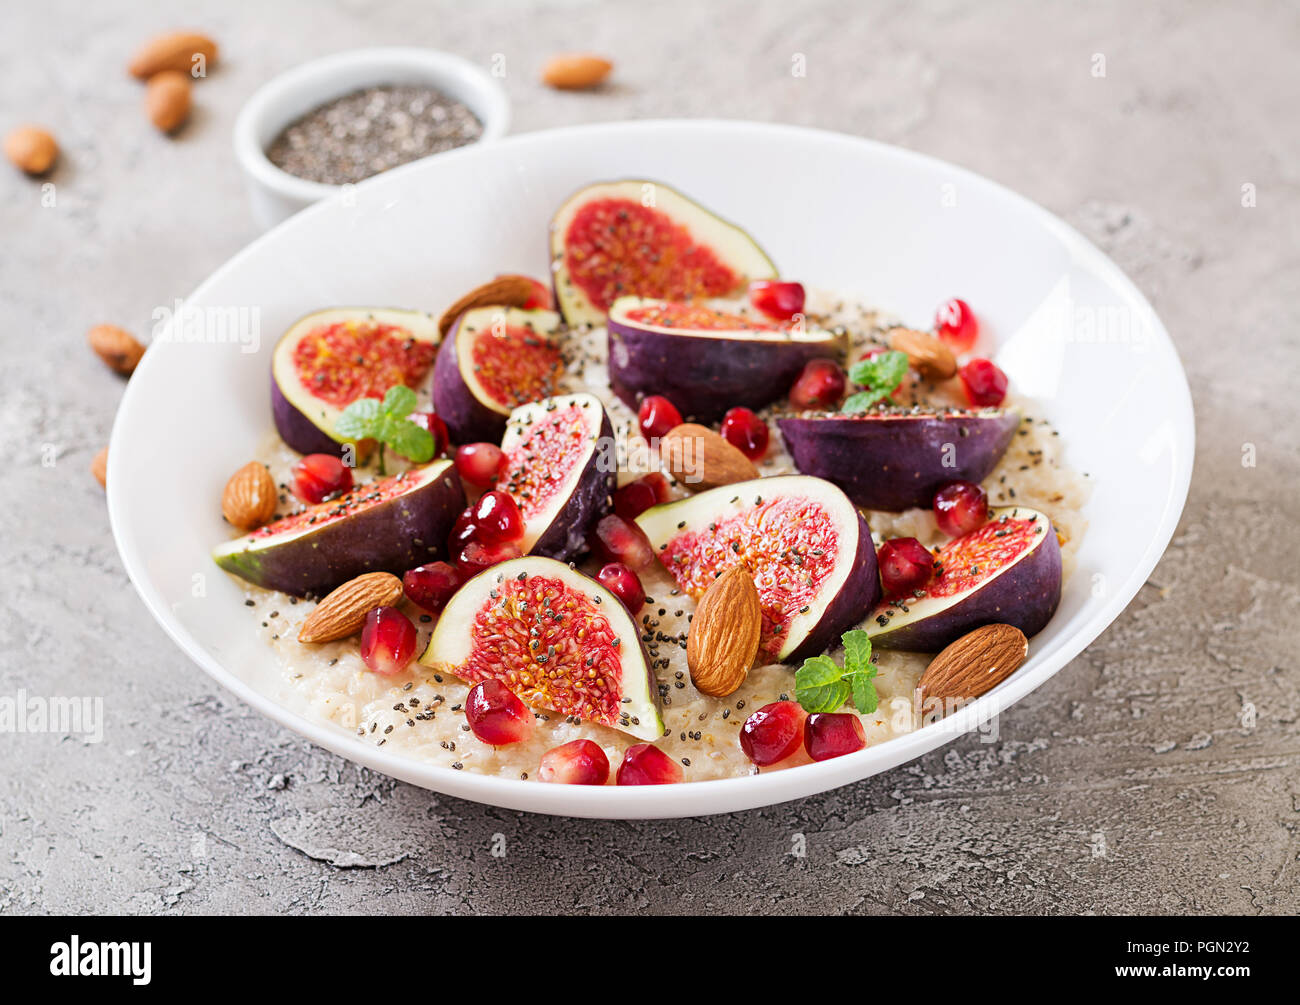 Delicious and healthy oatmeal with figs, almond and chia seeds. Healthy breakfast. Fitness food. Proper nutrition. - Stock Image